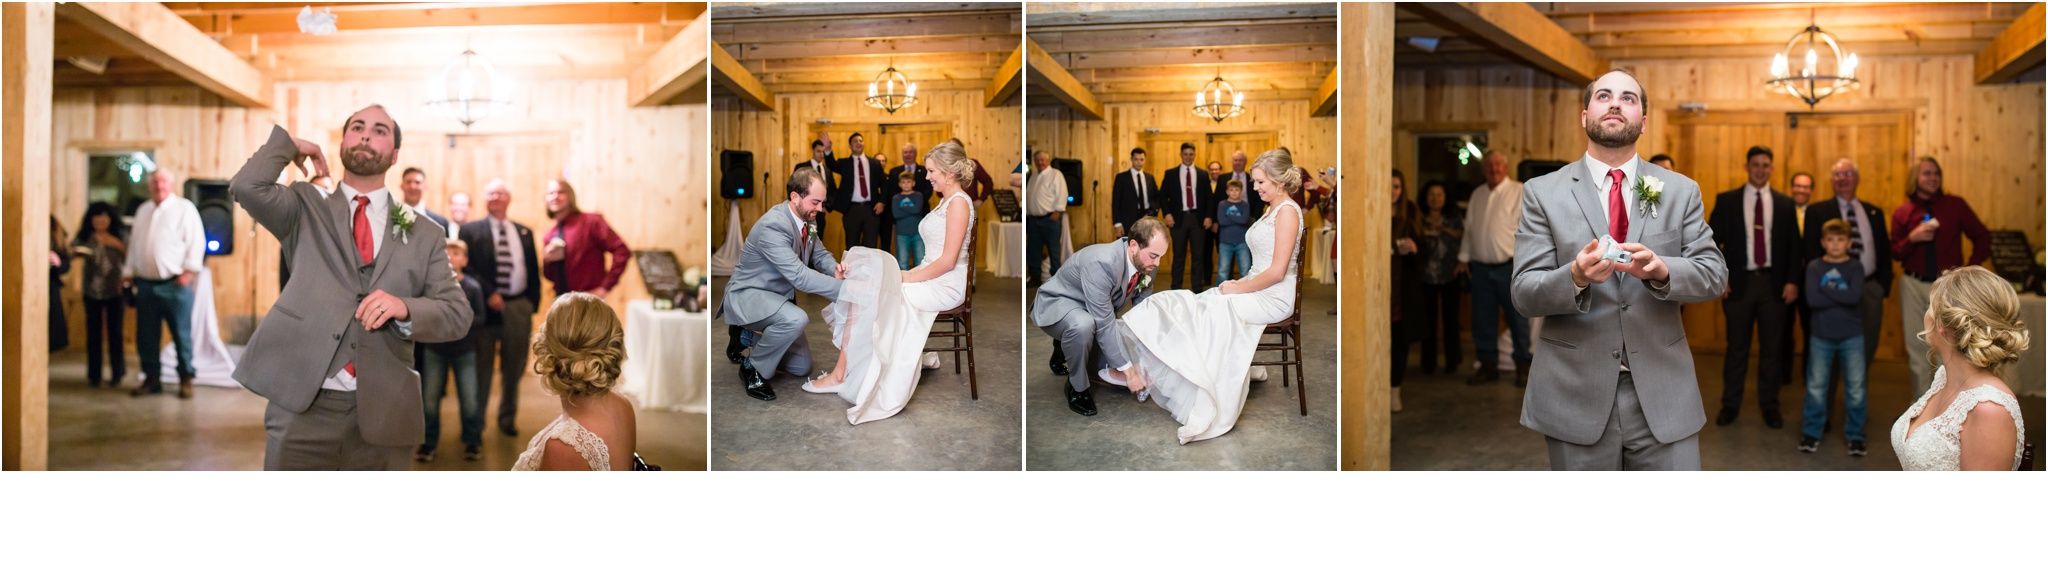 Rainey_Gregg_Photography_St._Simons_Island_Georgia_California_Wedding_Portrait_Photography_0542.jpg